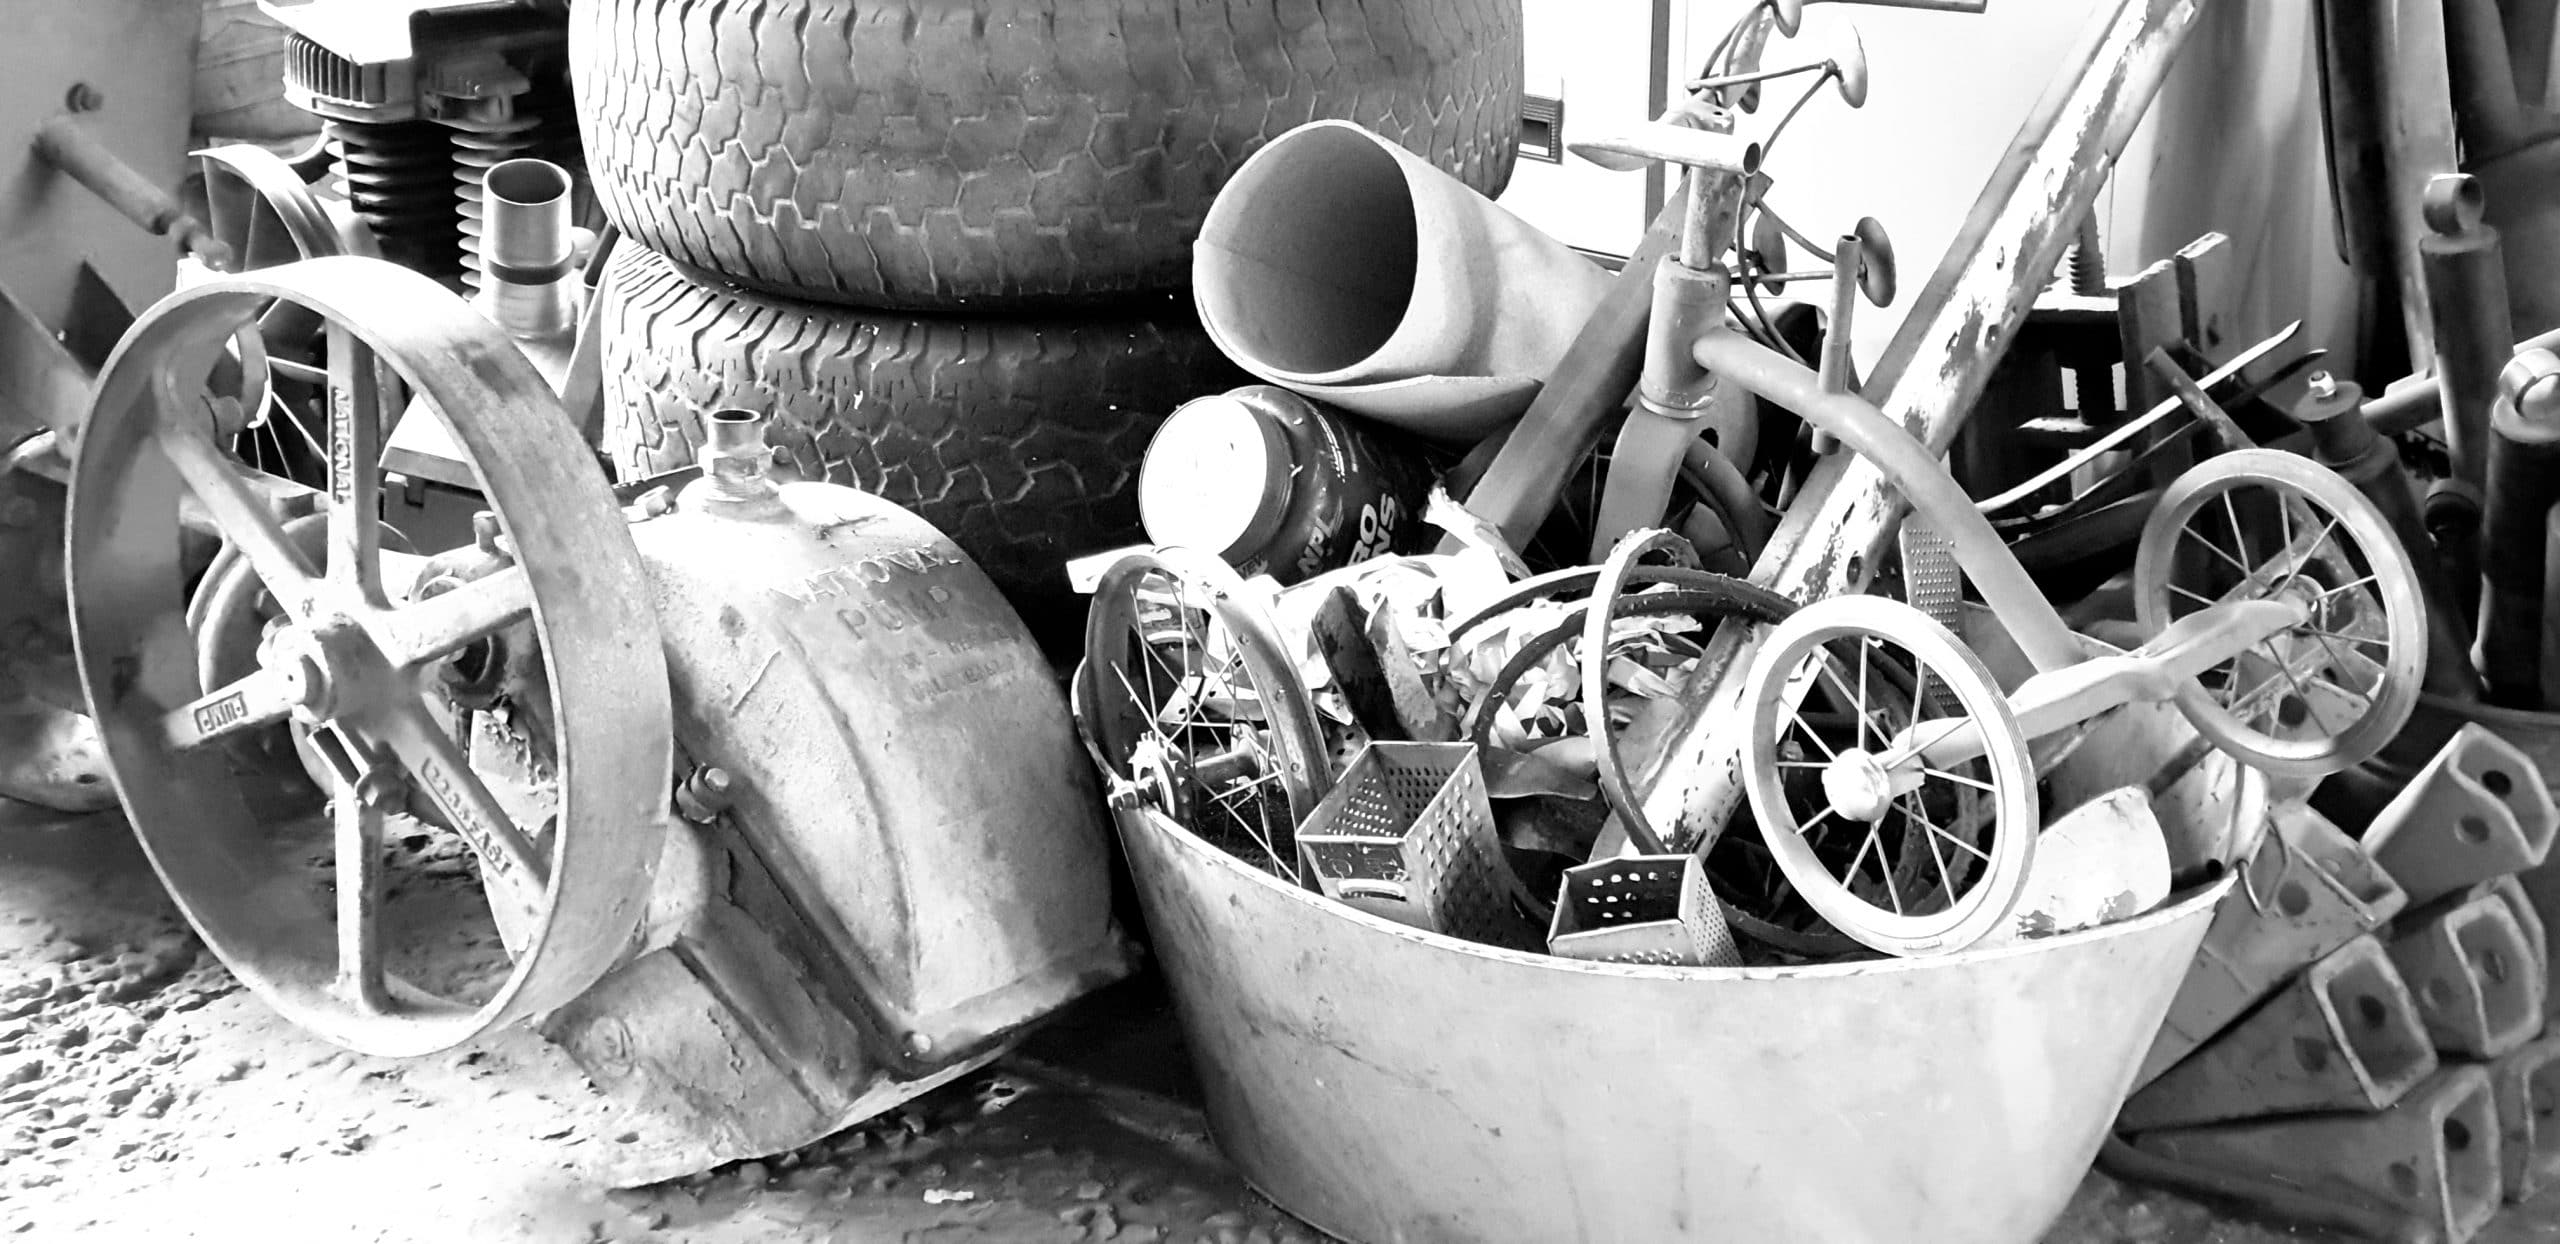 all types of junk for skip bins